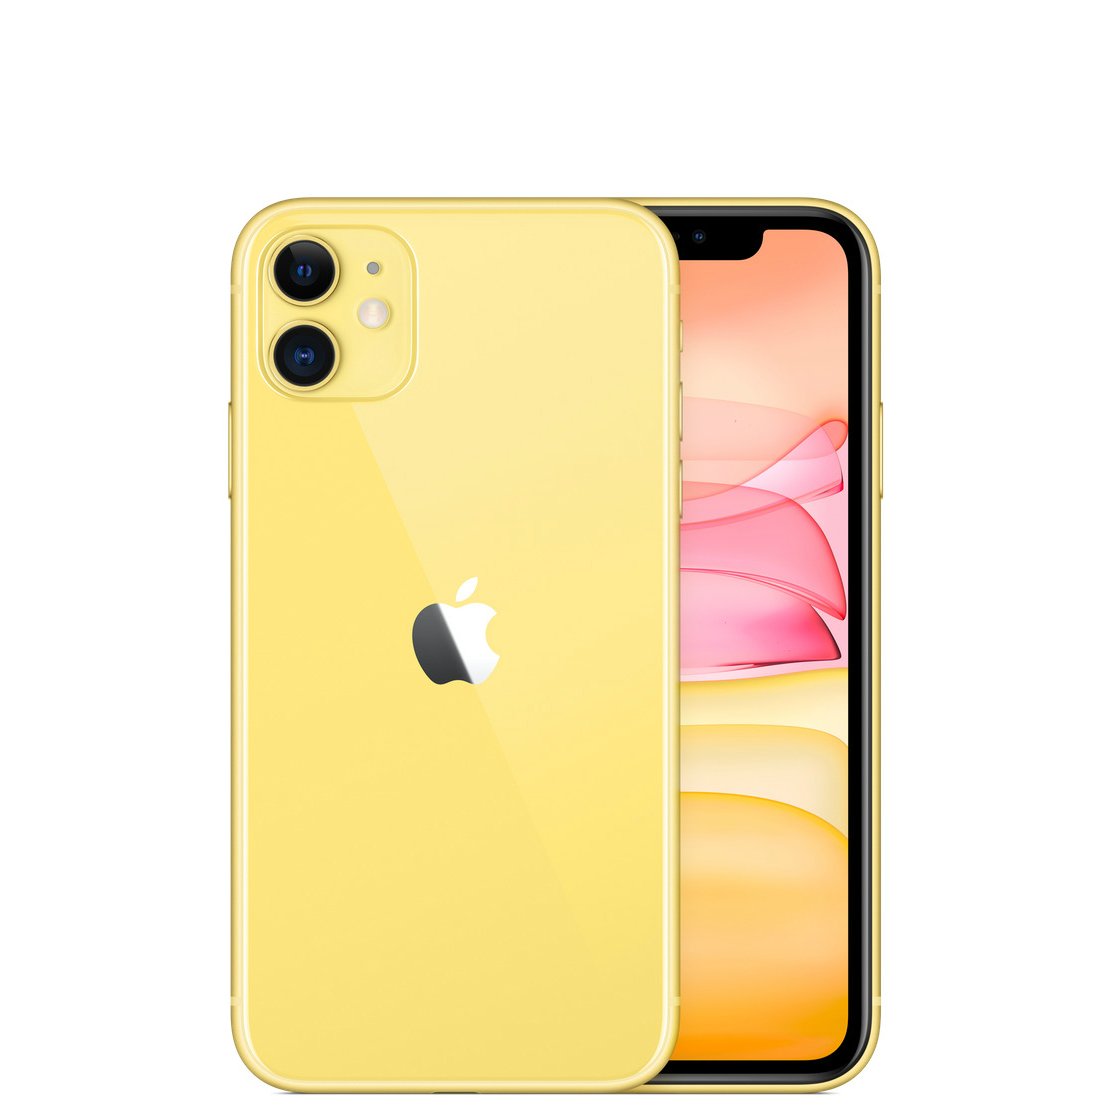 Image of Apple iPhone 11 128GB A2223 Dual Sim with Tempered Glass Screen Protector - Yellow